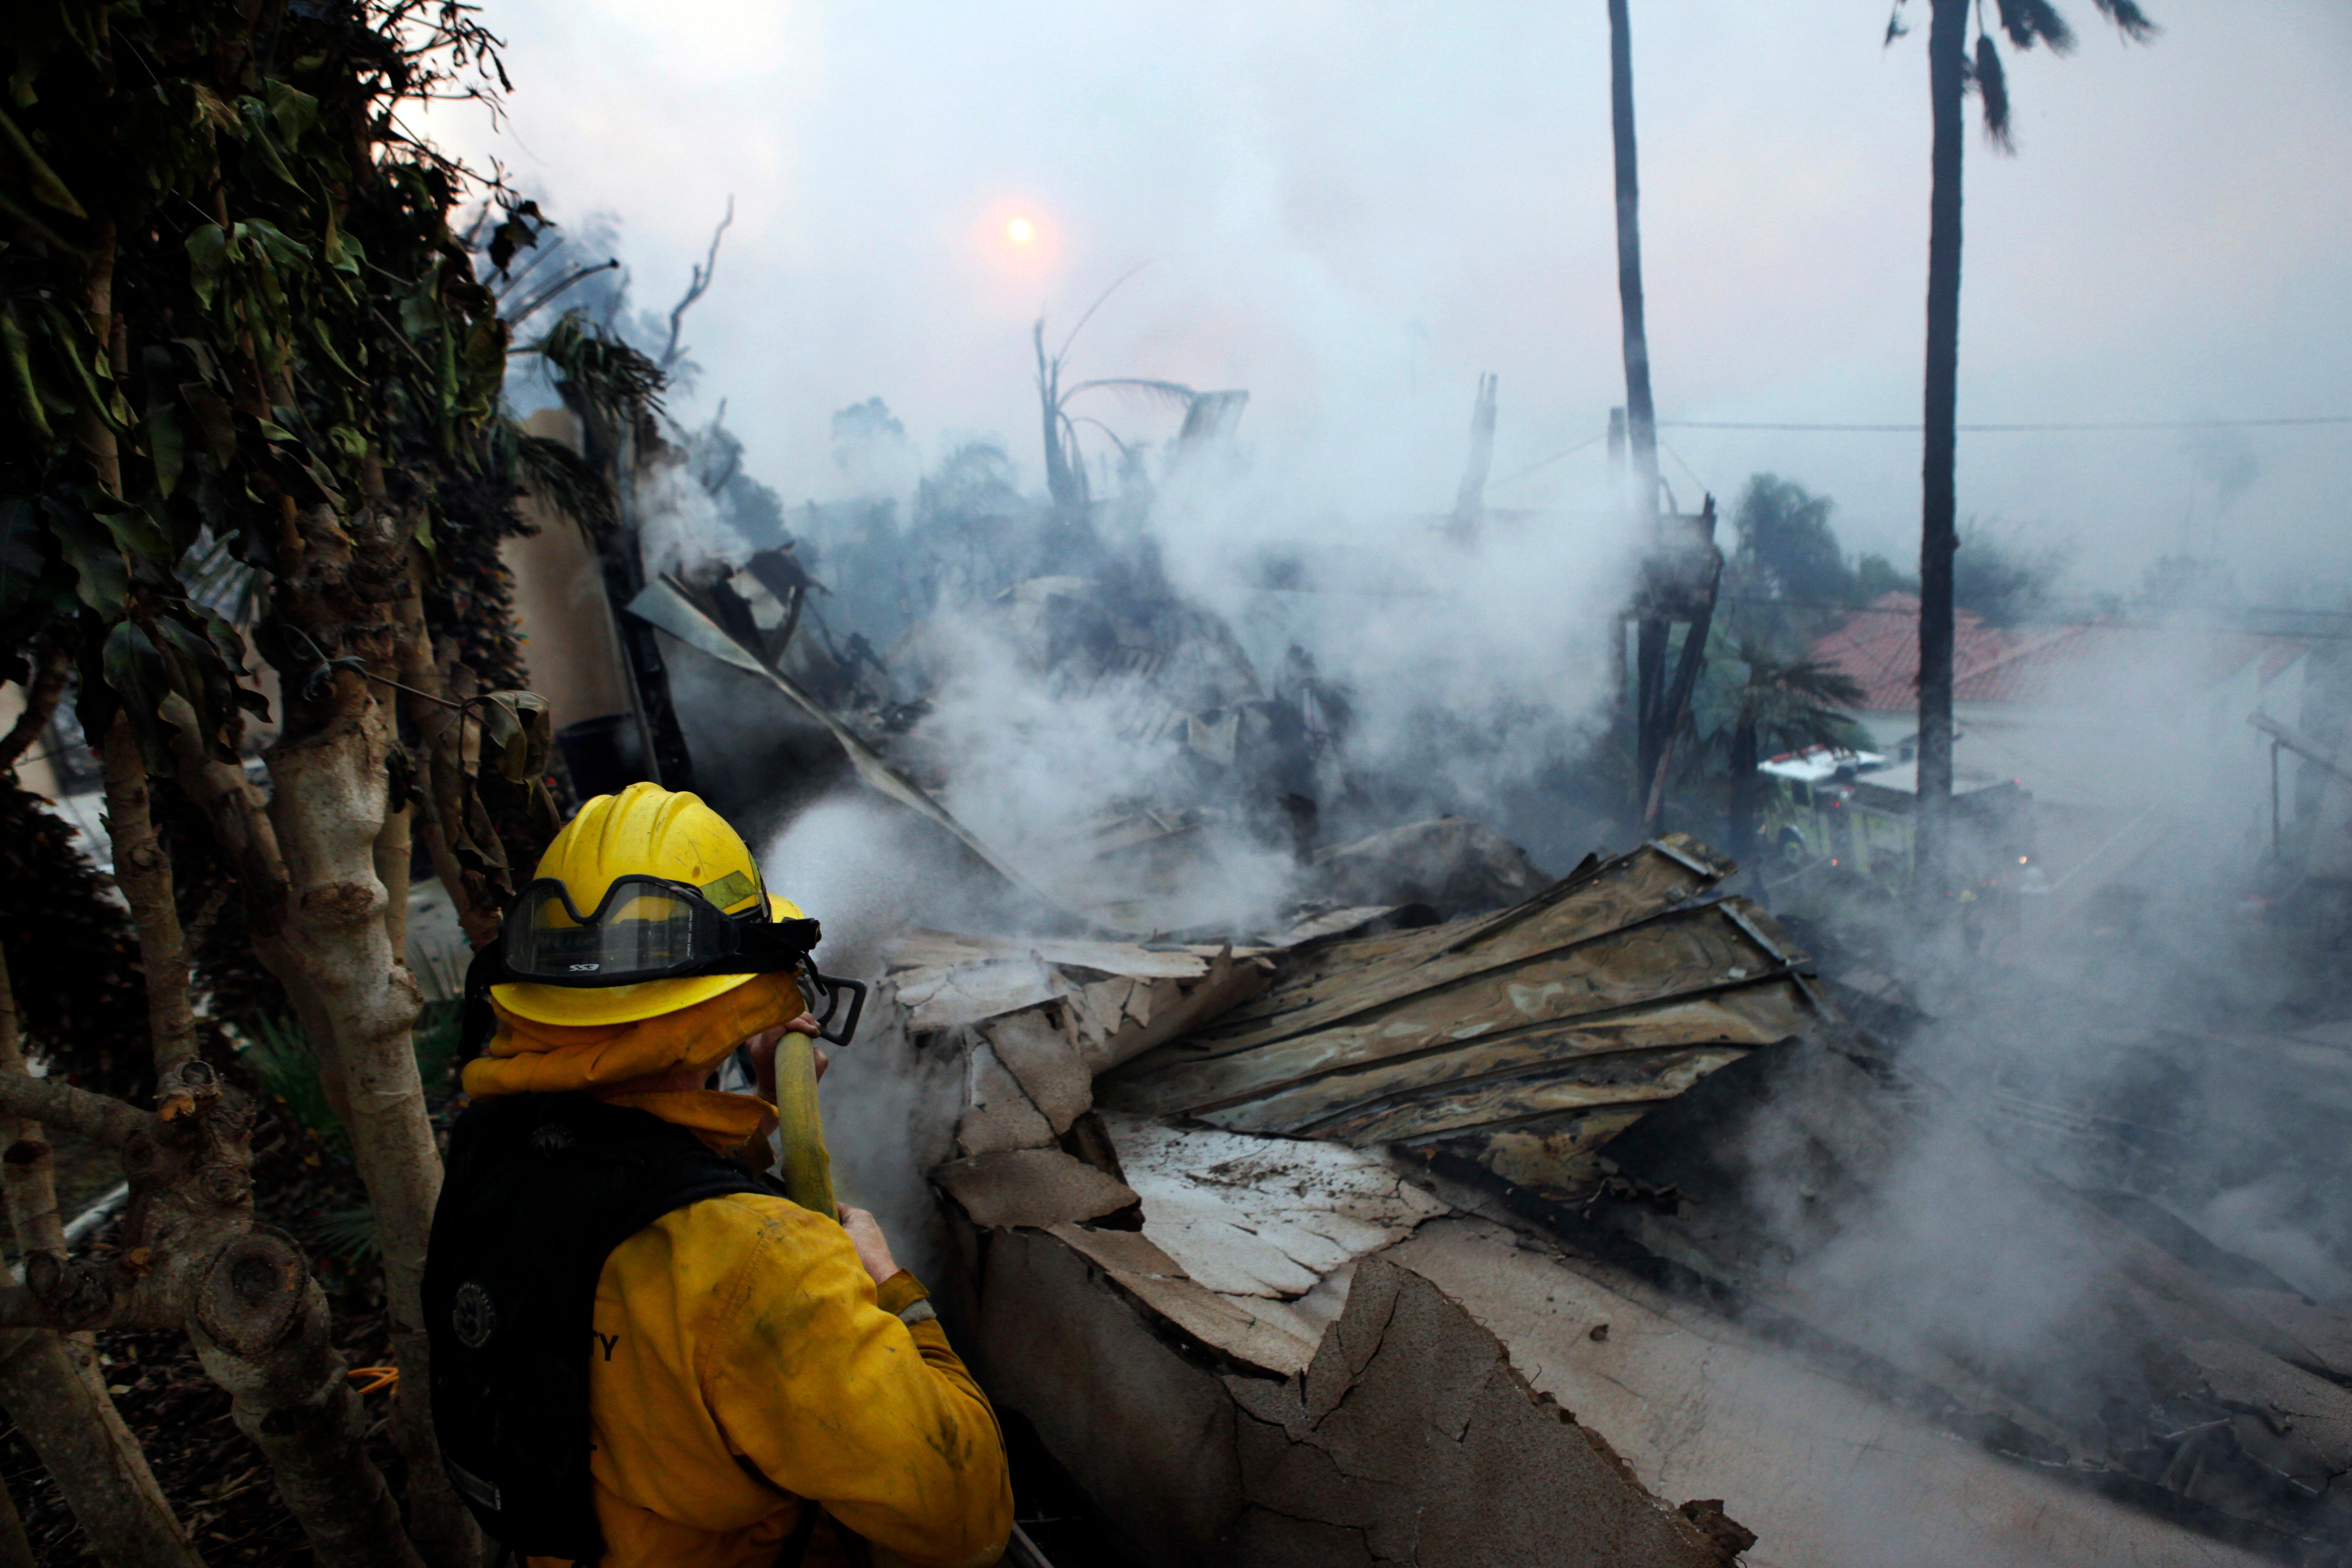 A firefighter hoses down smoldering debris in Ventura, Calif., Tuesday, Dec. 5, 2017. Ferocious Santa Ana winds raking Southern California whipped explosive wildfires Tuesday, prompting evacuation orders for thousands of homes. (Daniel Dreifuss via AP)